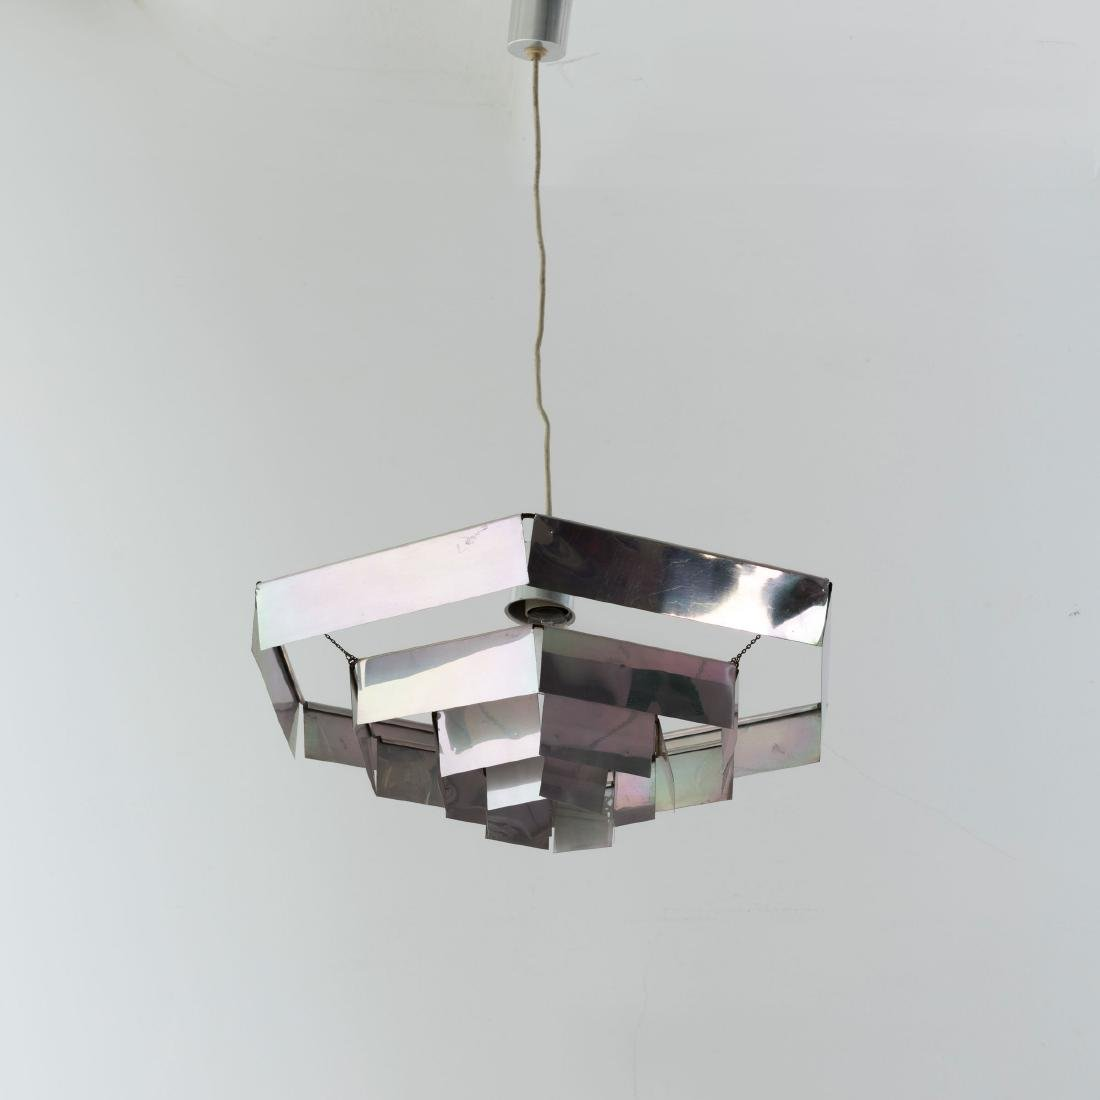 'Esagonale' ceiling light, 1964 - 2